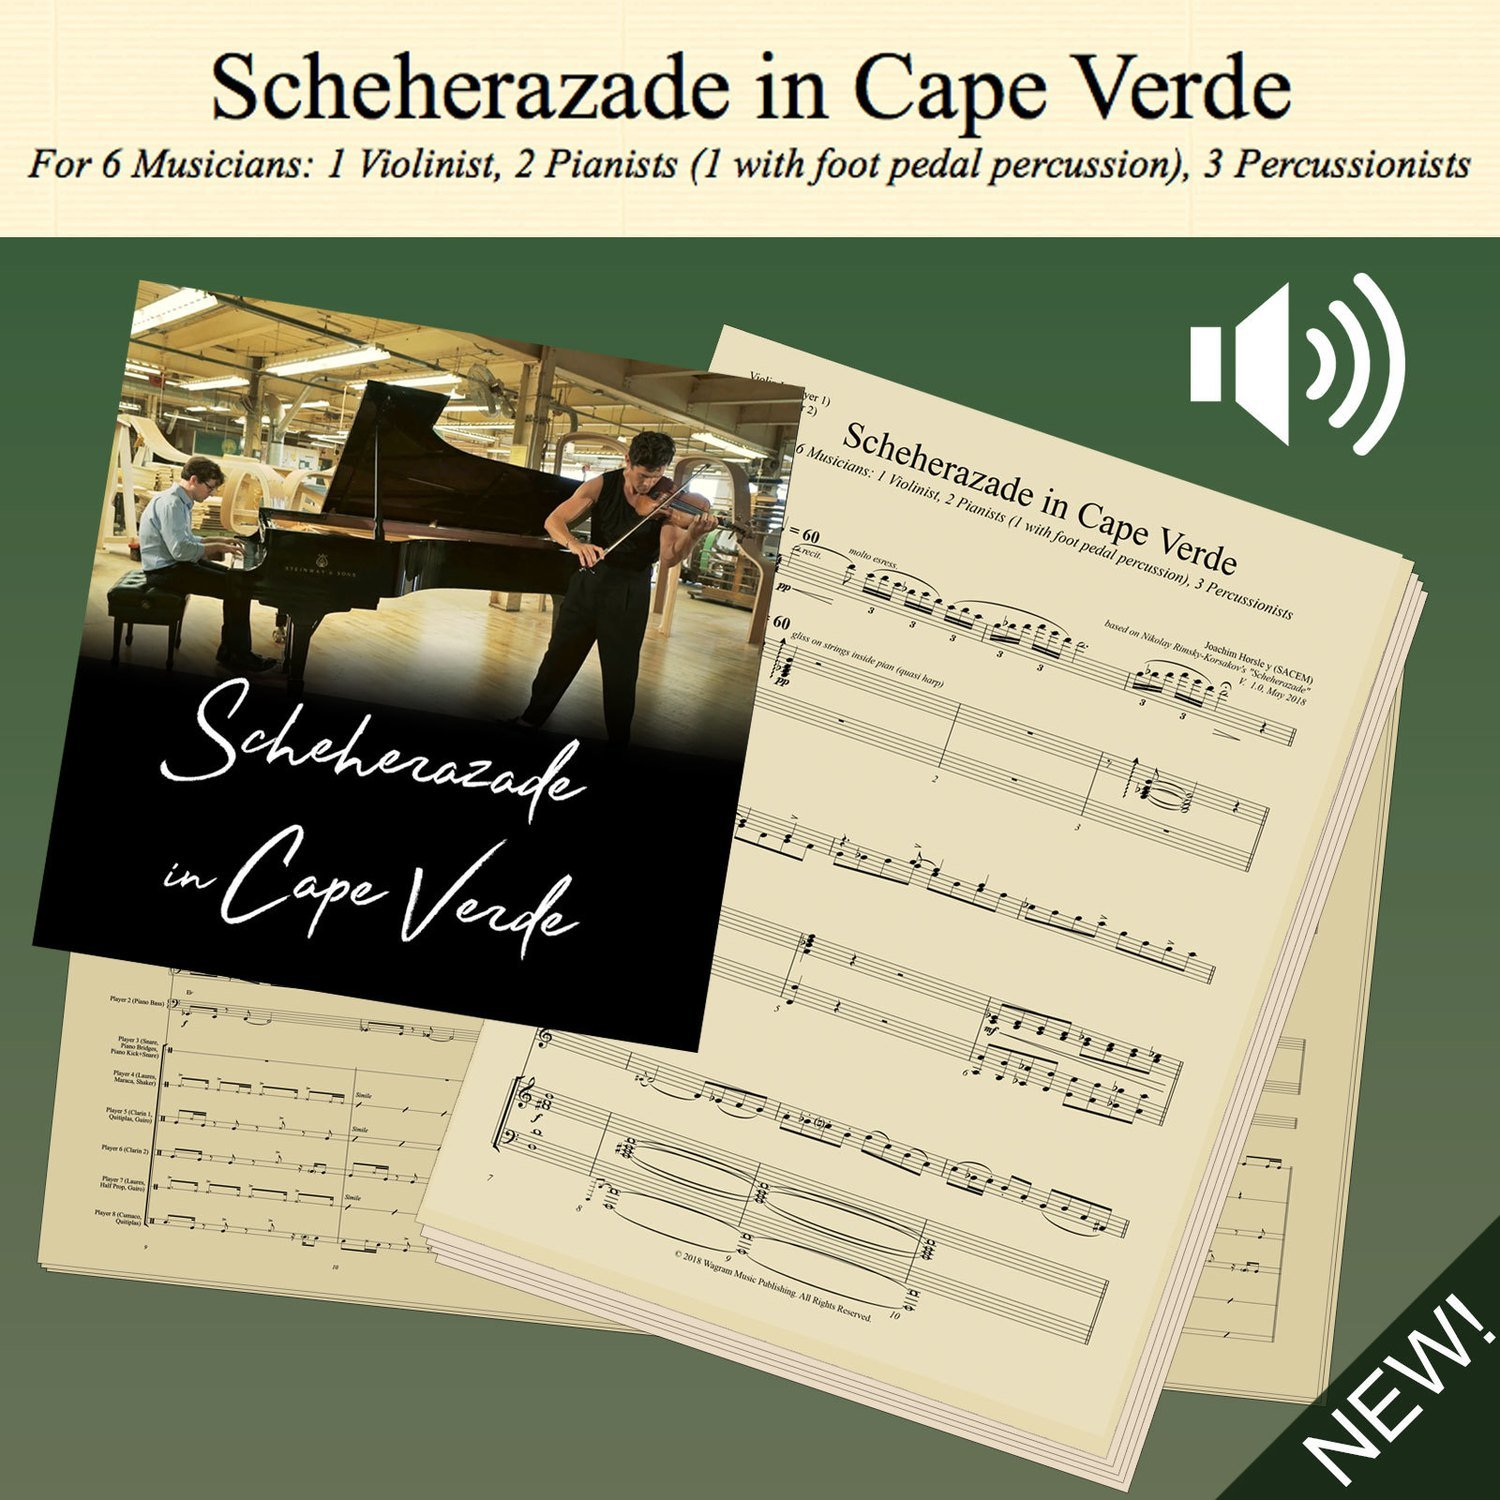 Scheherazade in Cape Verde